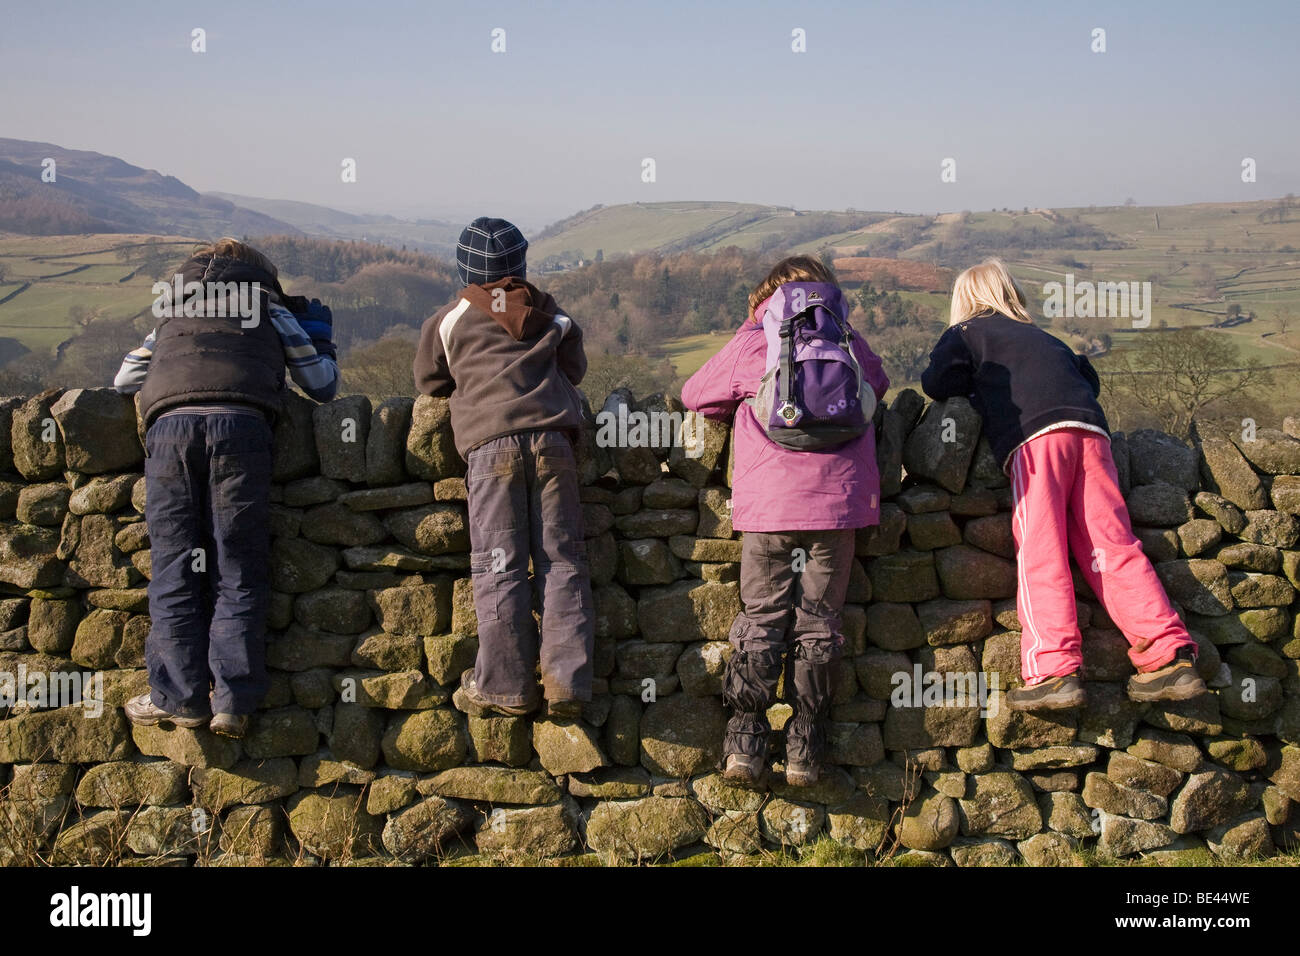 Four children taking a break from their walk, perching and leaning on a dry stone wall, admiring the view over Wharfedale. - Stock Image